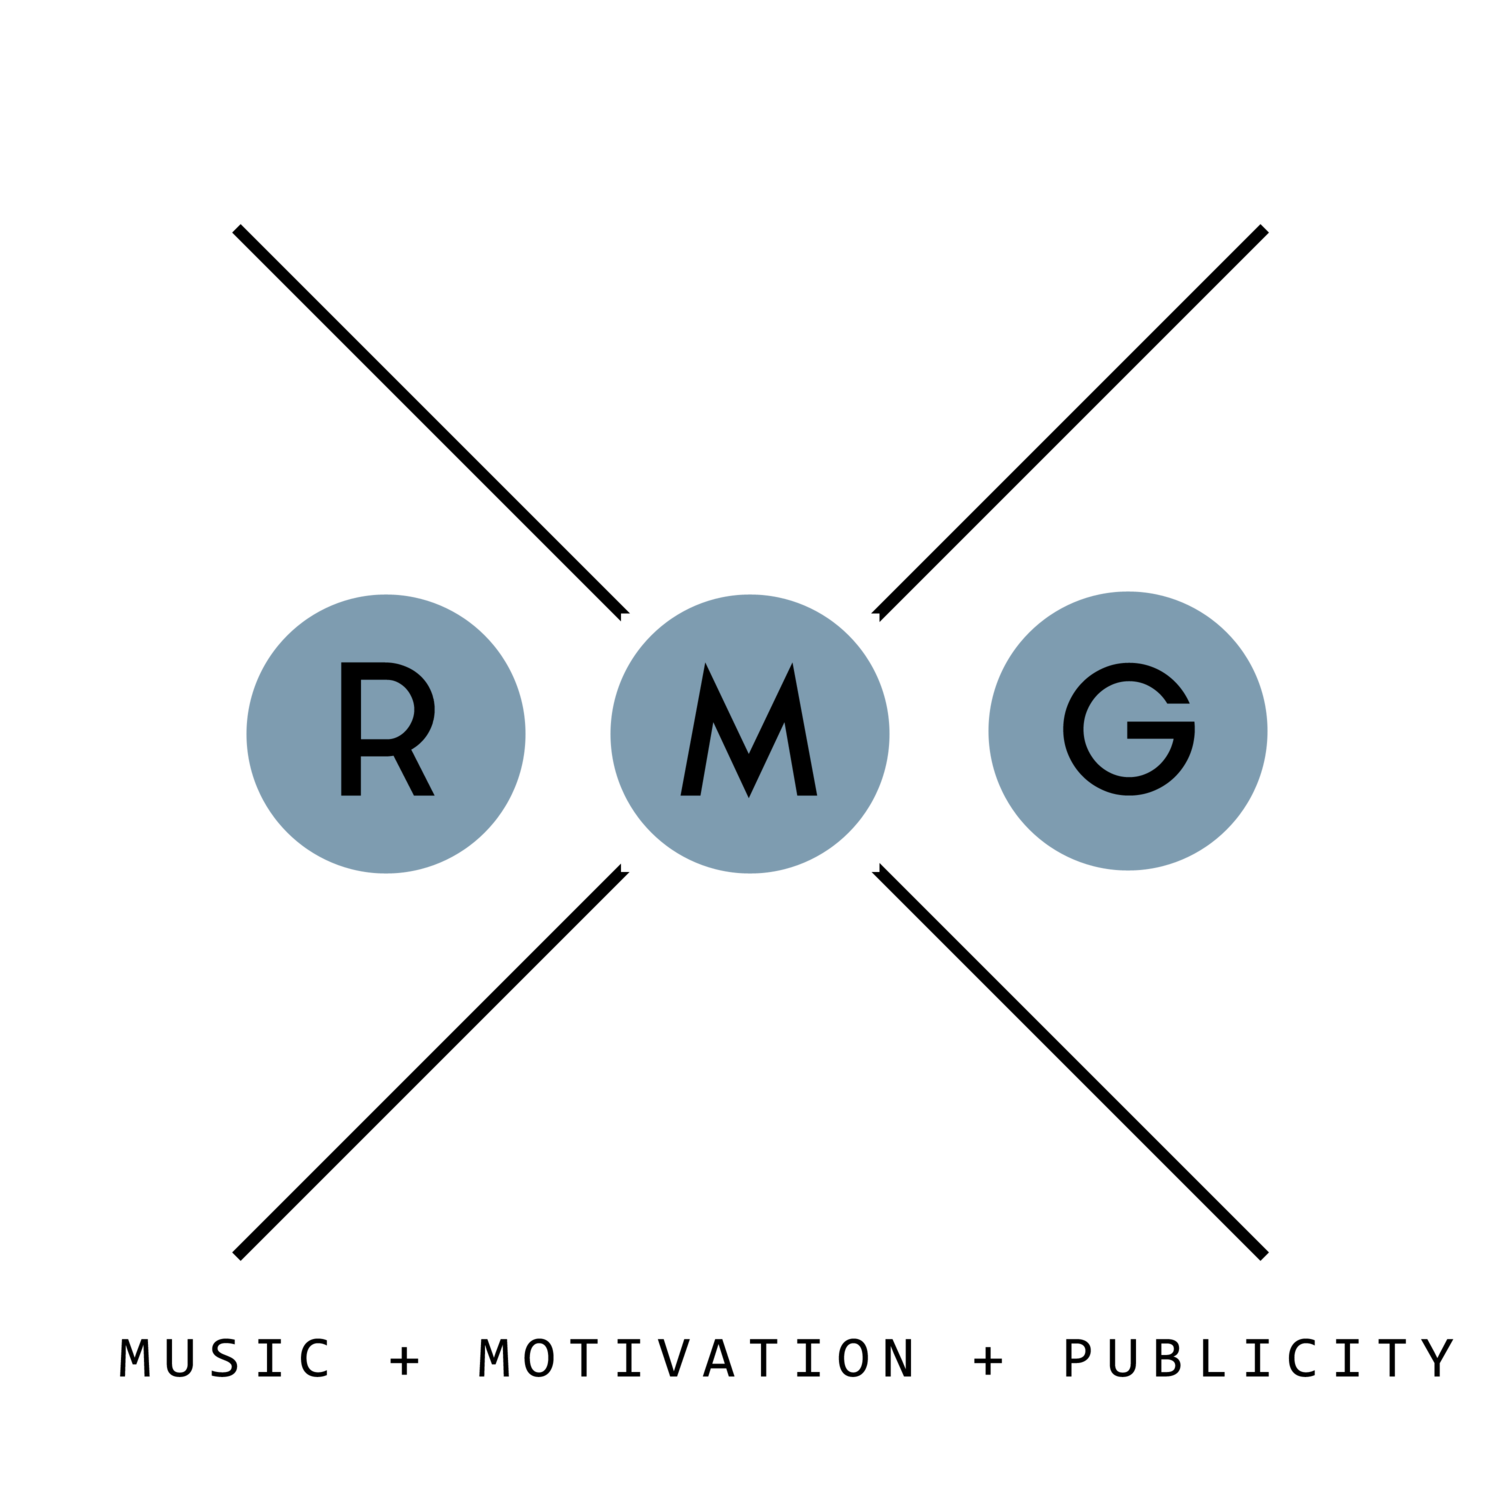 THE RMG Media GROUP